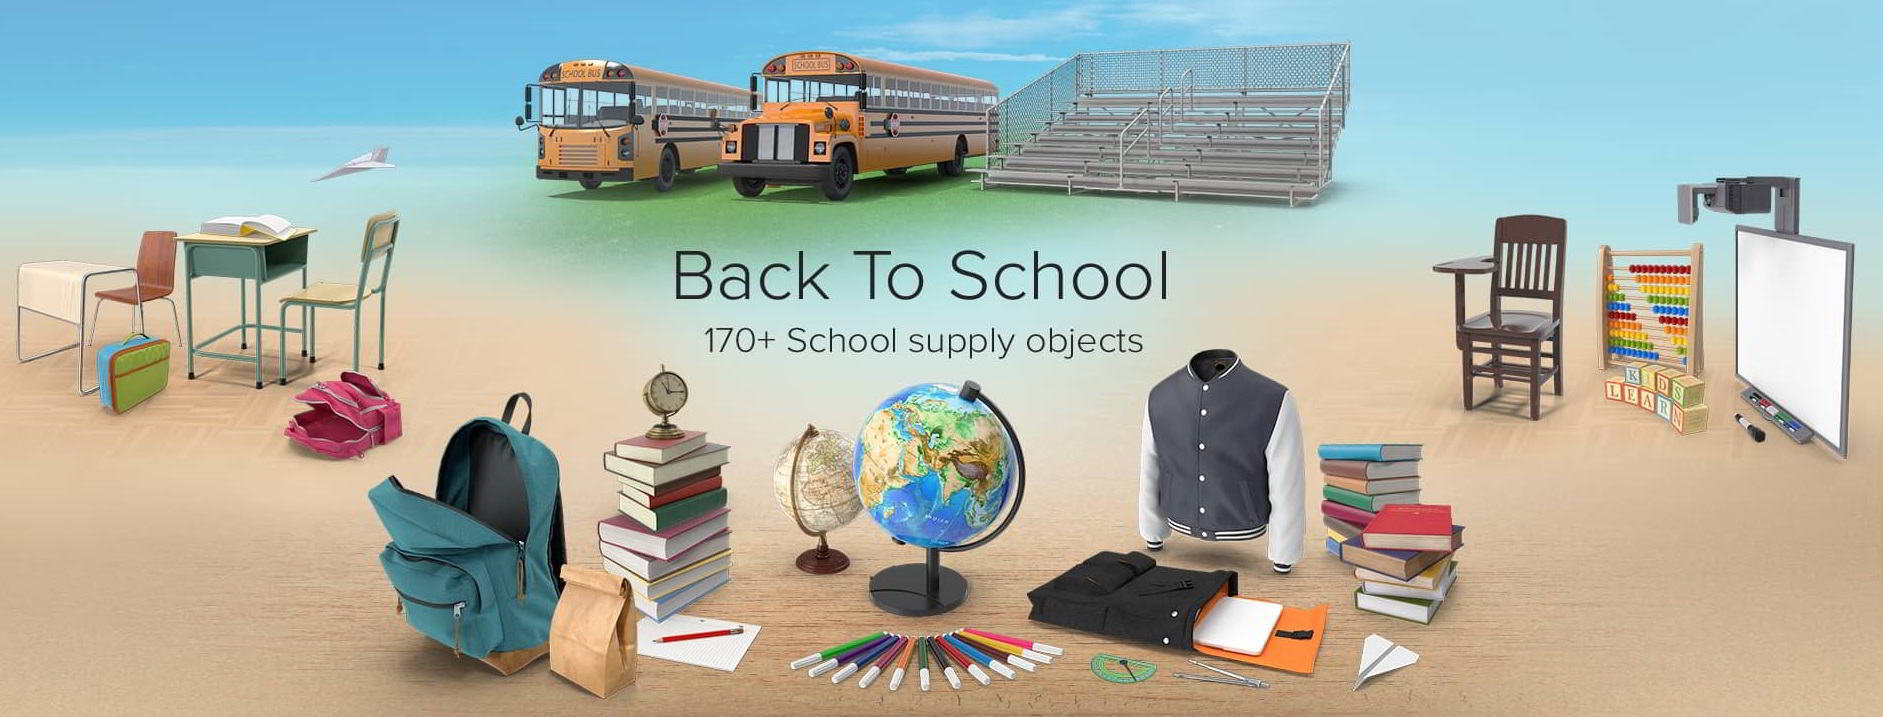 PixelSquid – Back to School Collection free download